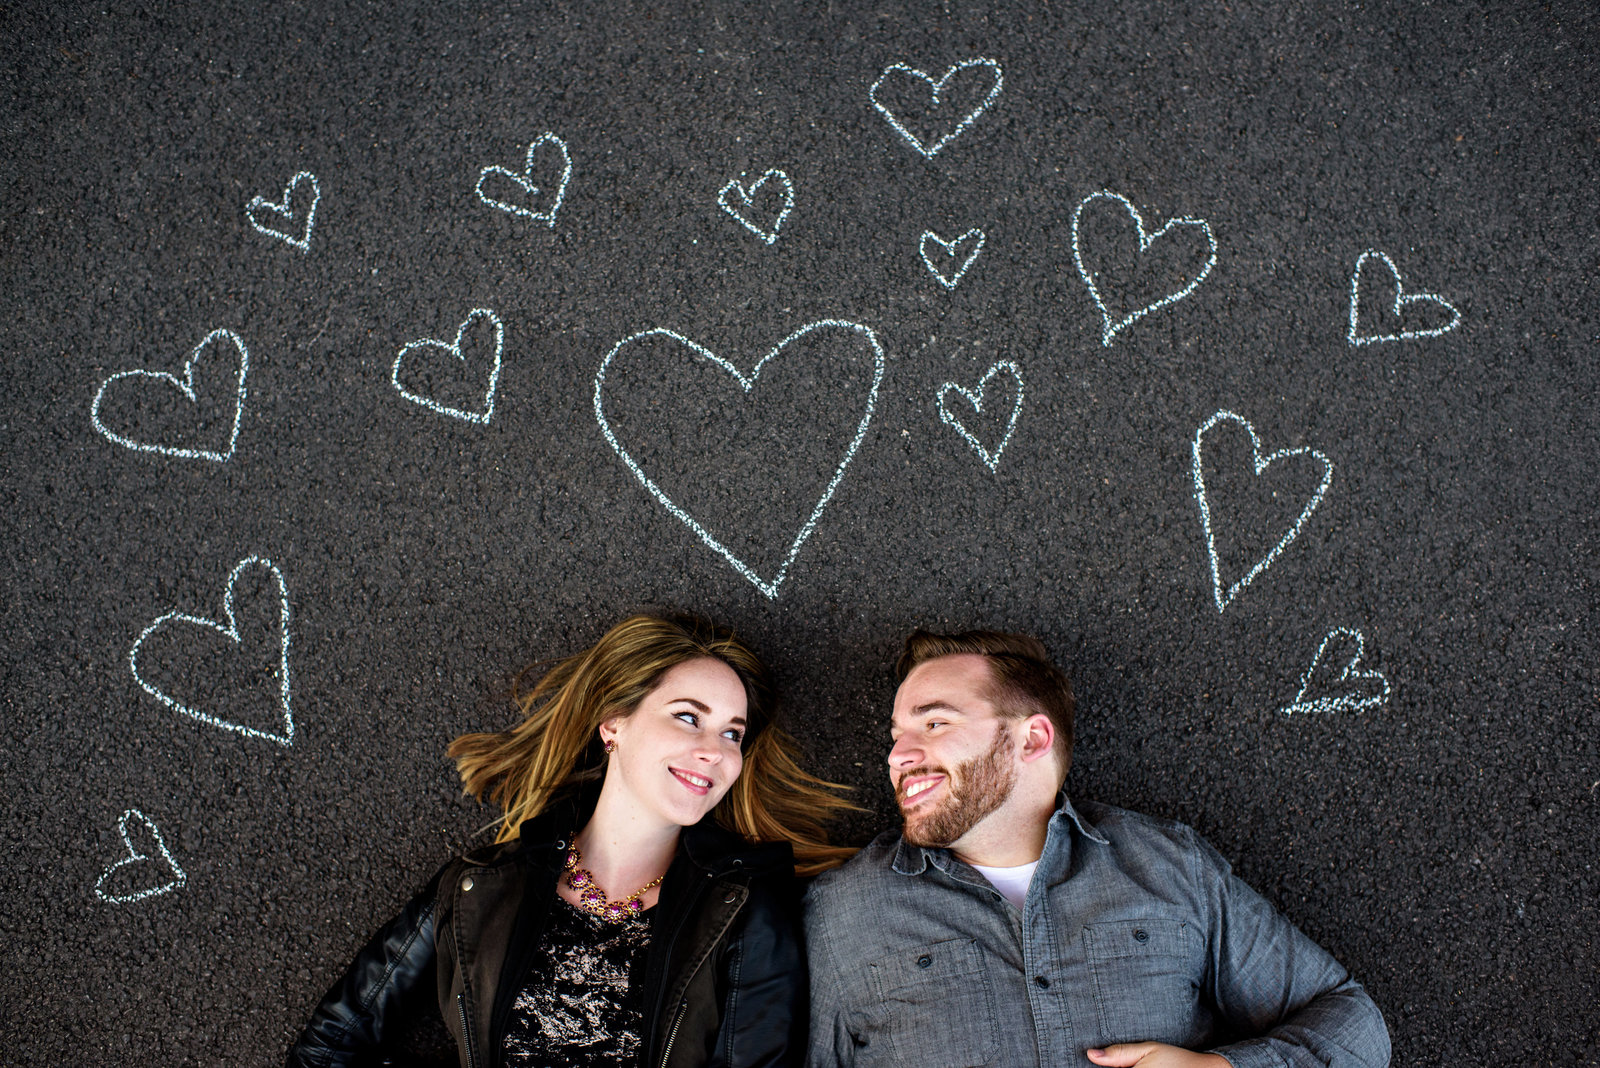 A loving couple lay on the ground surrounded by chalk hearts drawn around them.